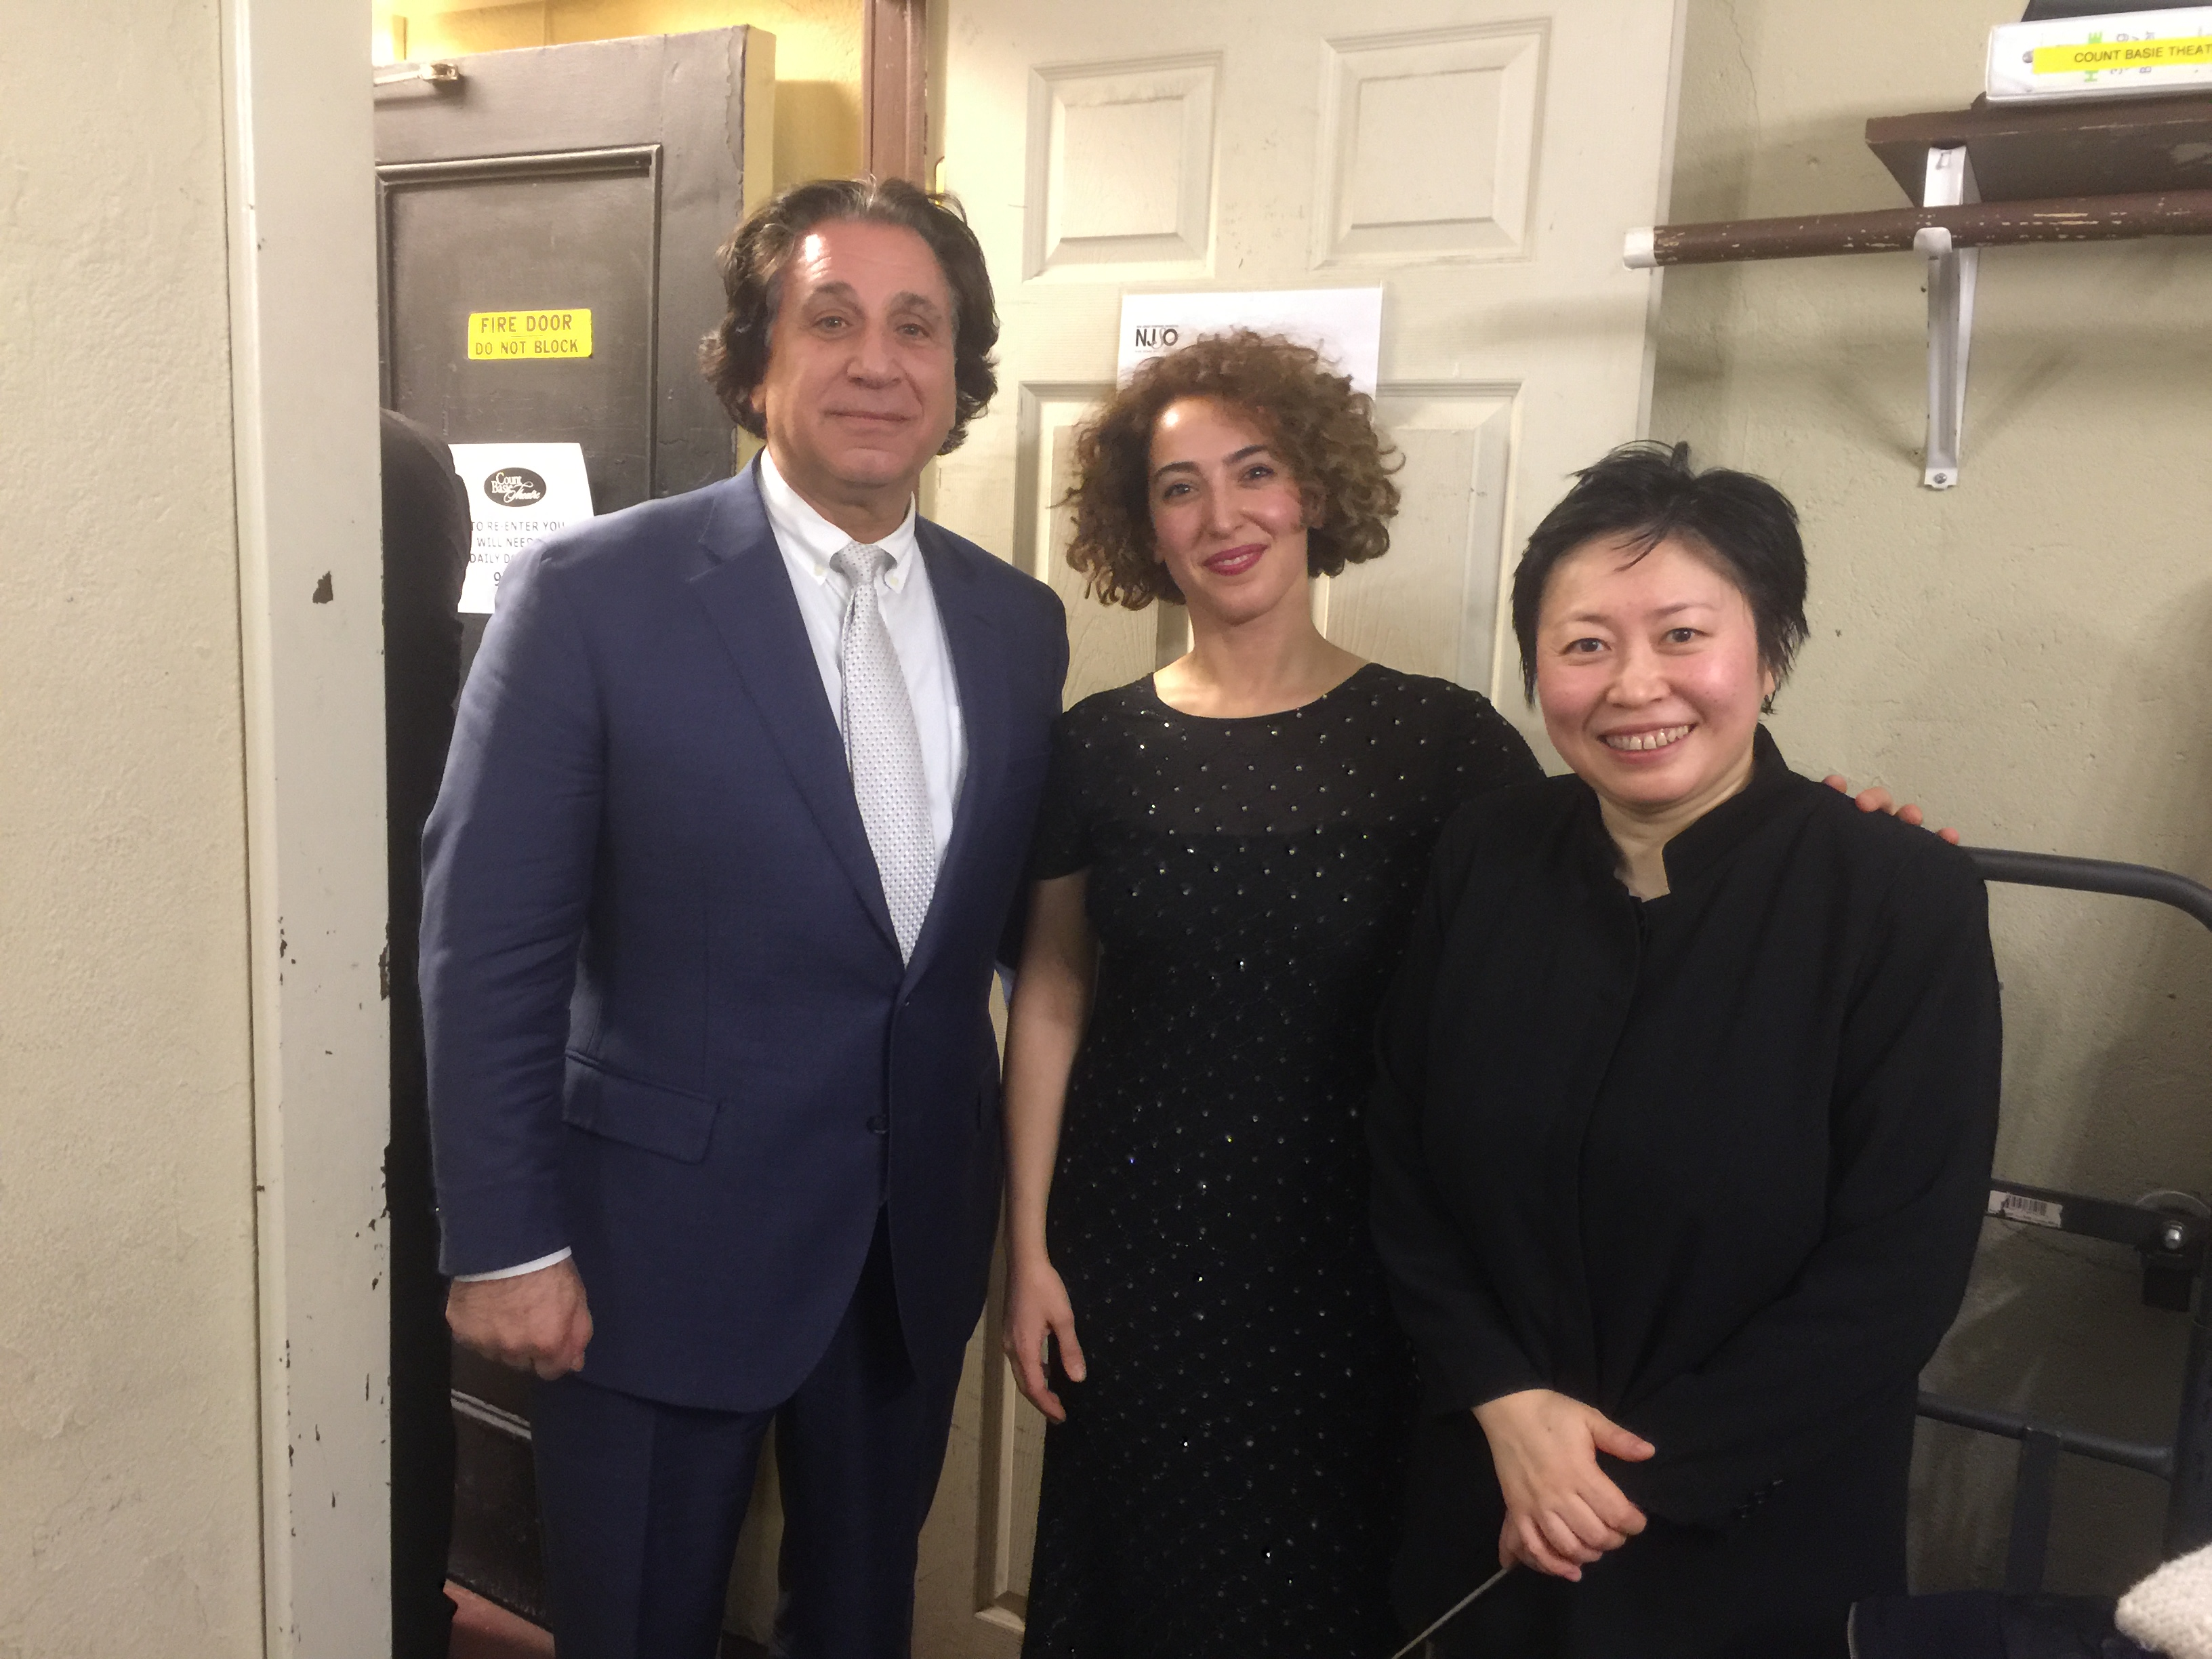 Richard Danielpour, Sara Daneshpour and music director Xian Zheng following the premiere of Carnival